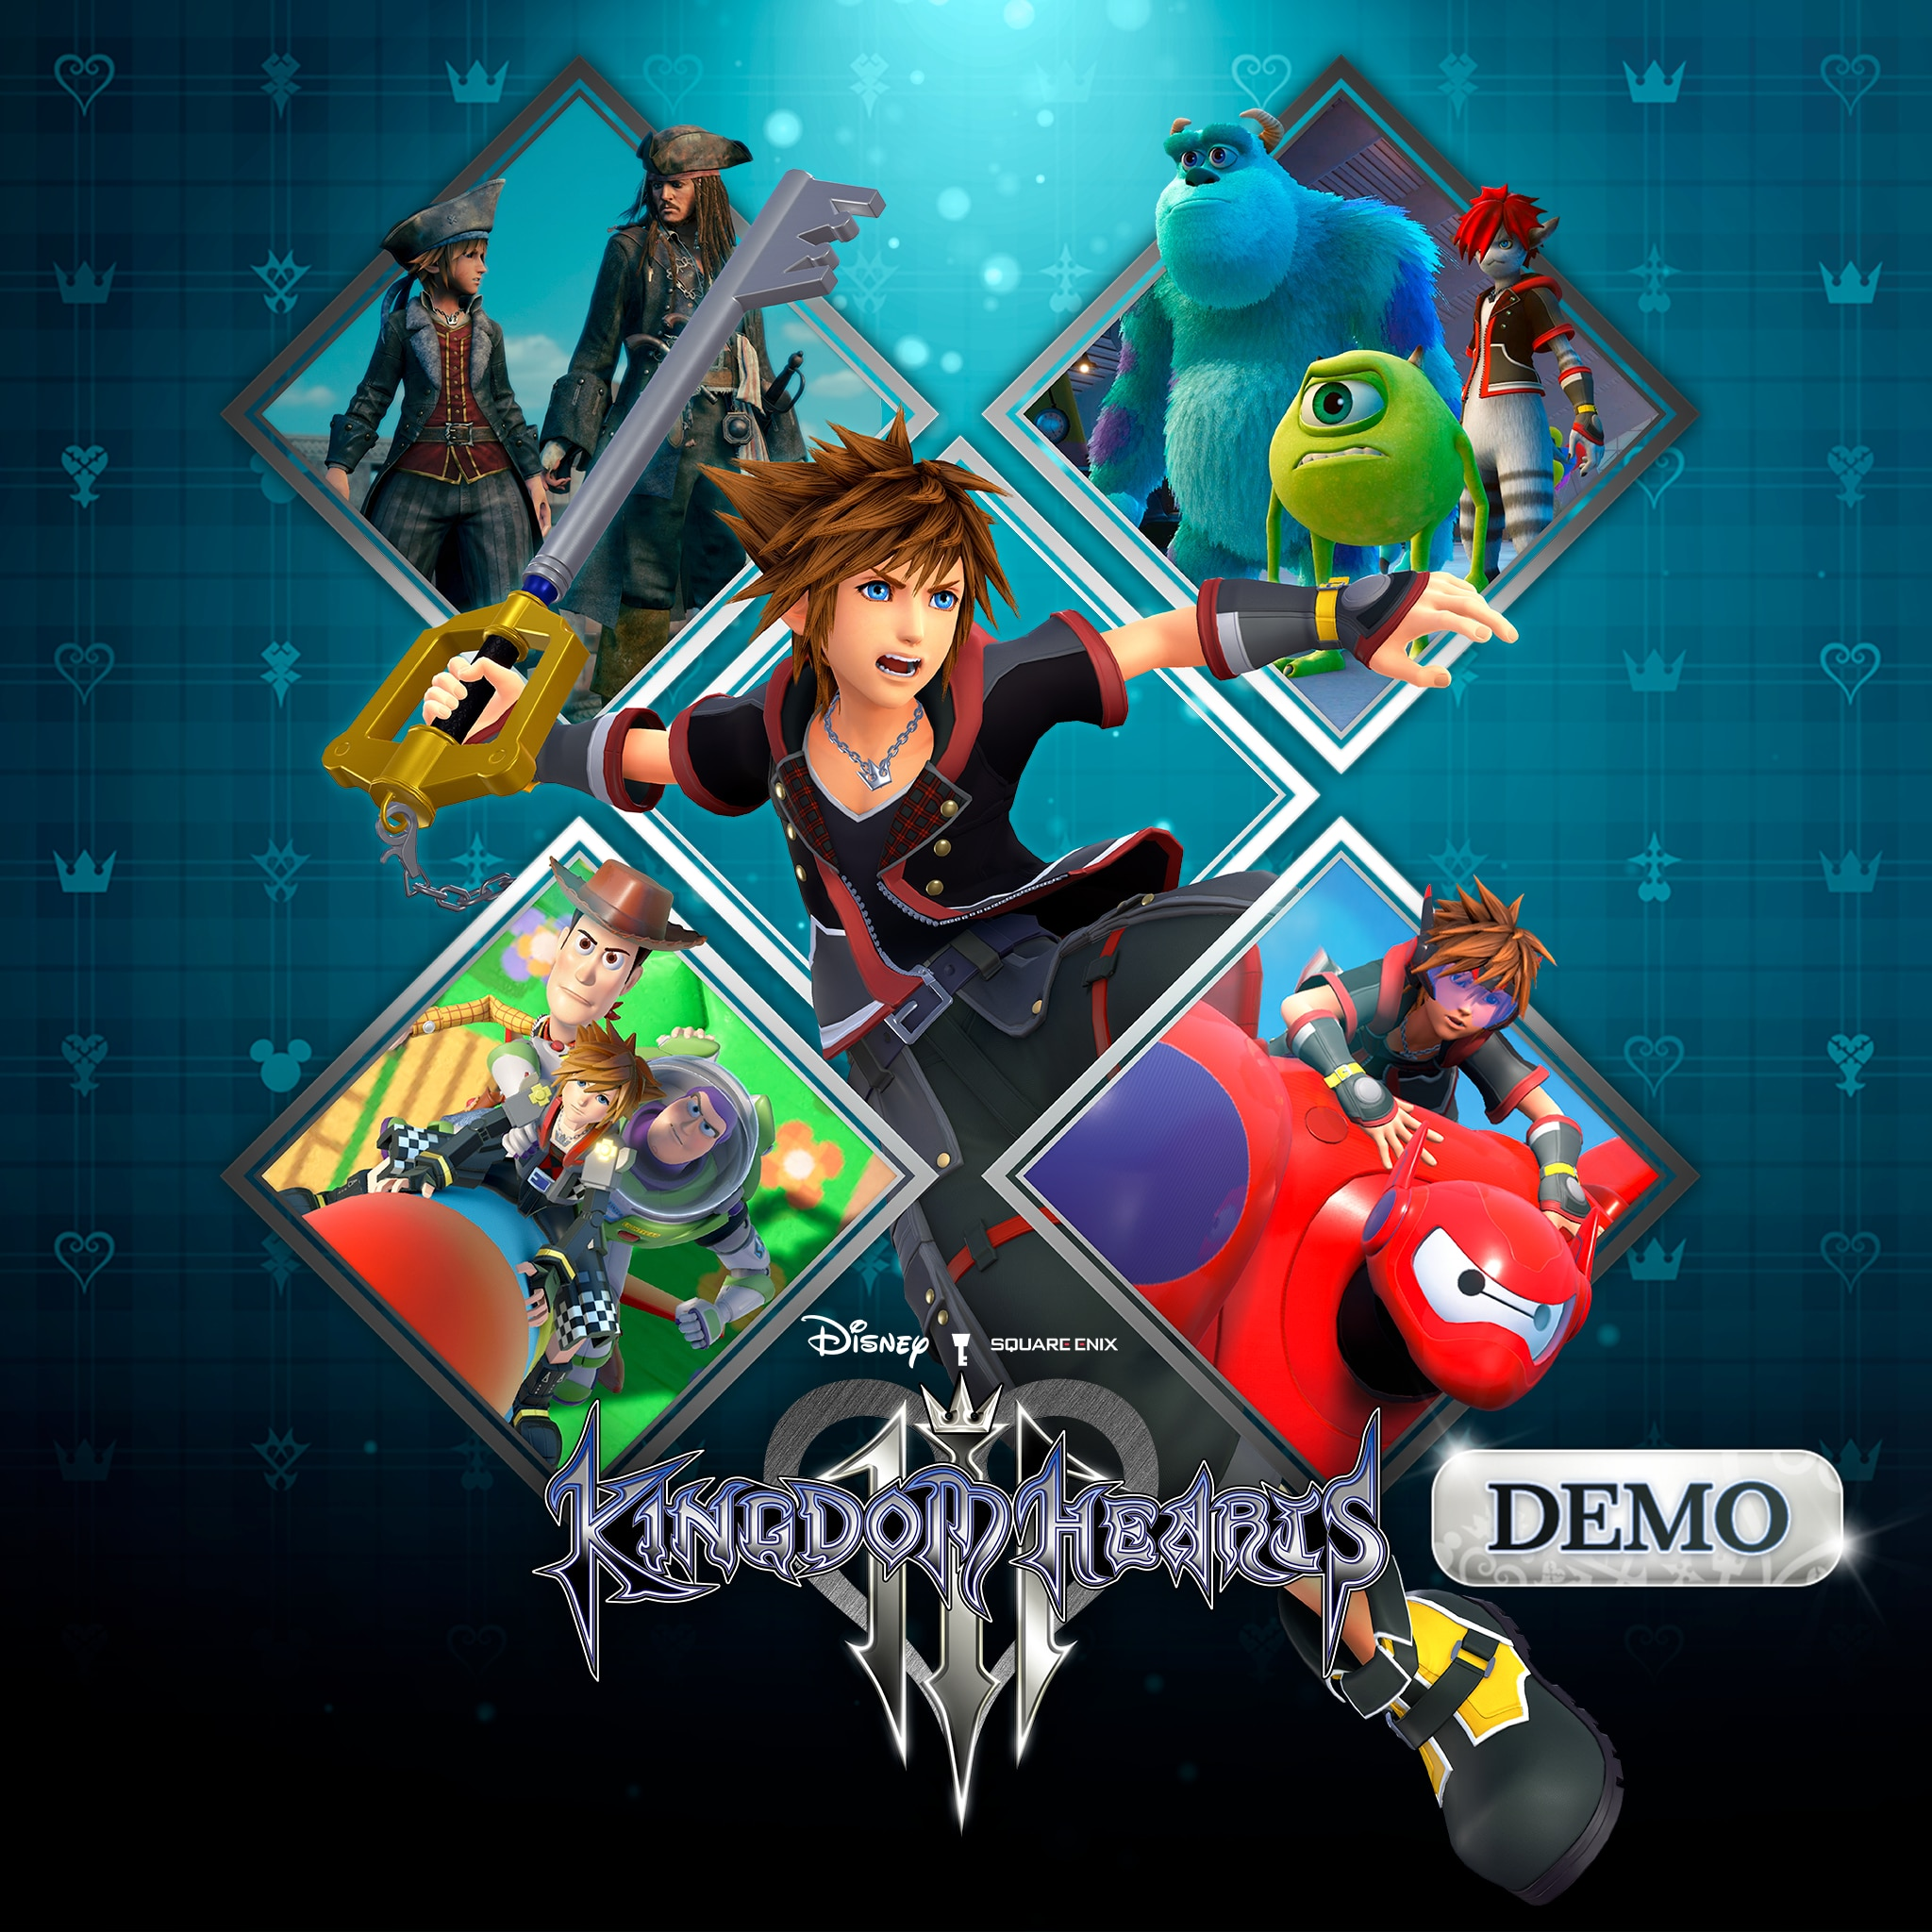 Demo de KINGDOM HEARTS III